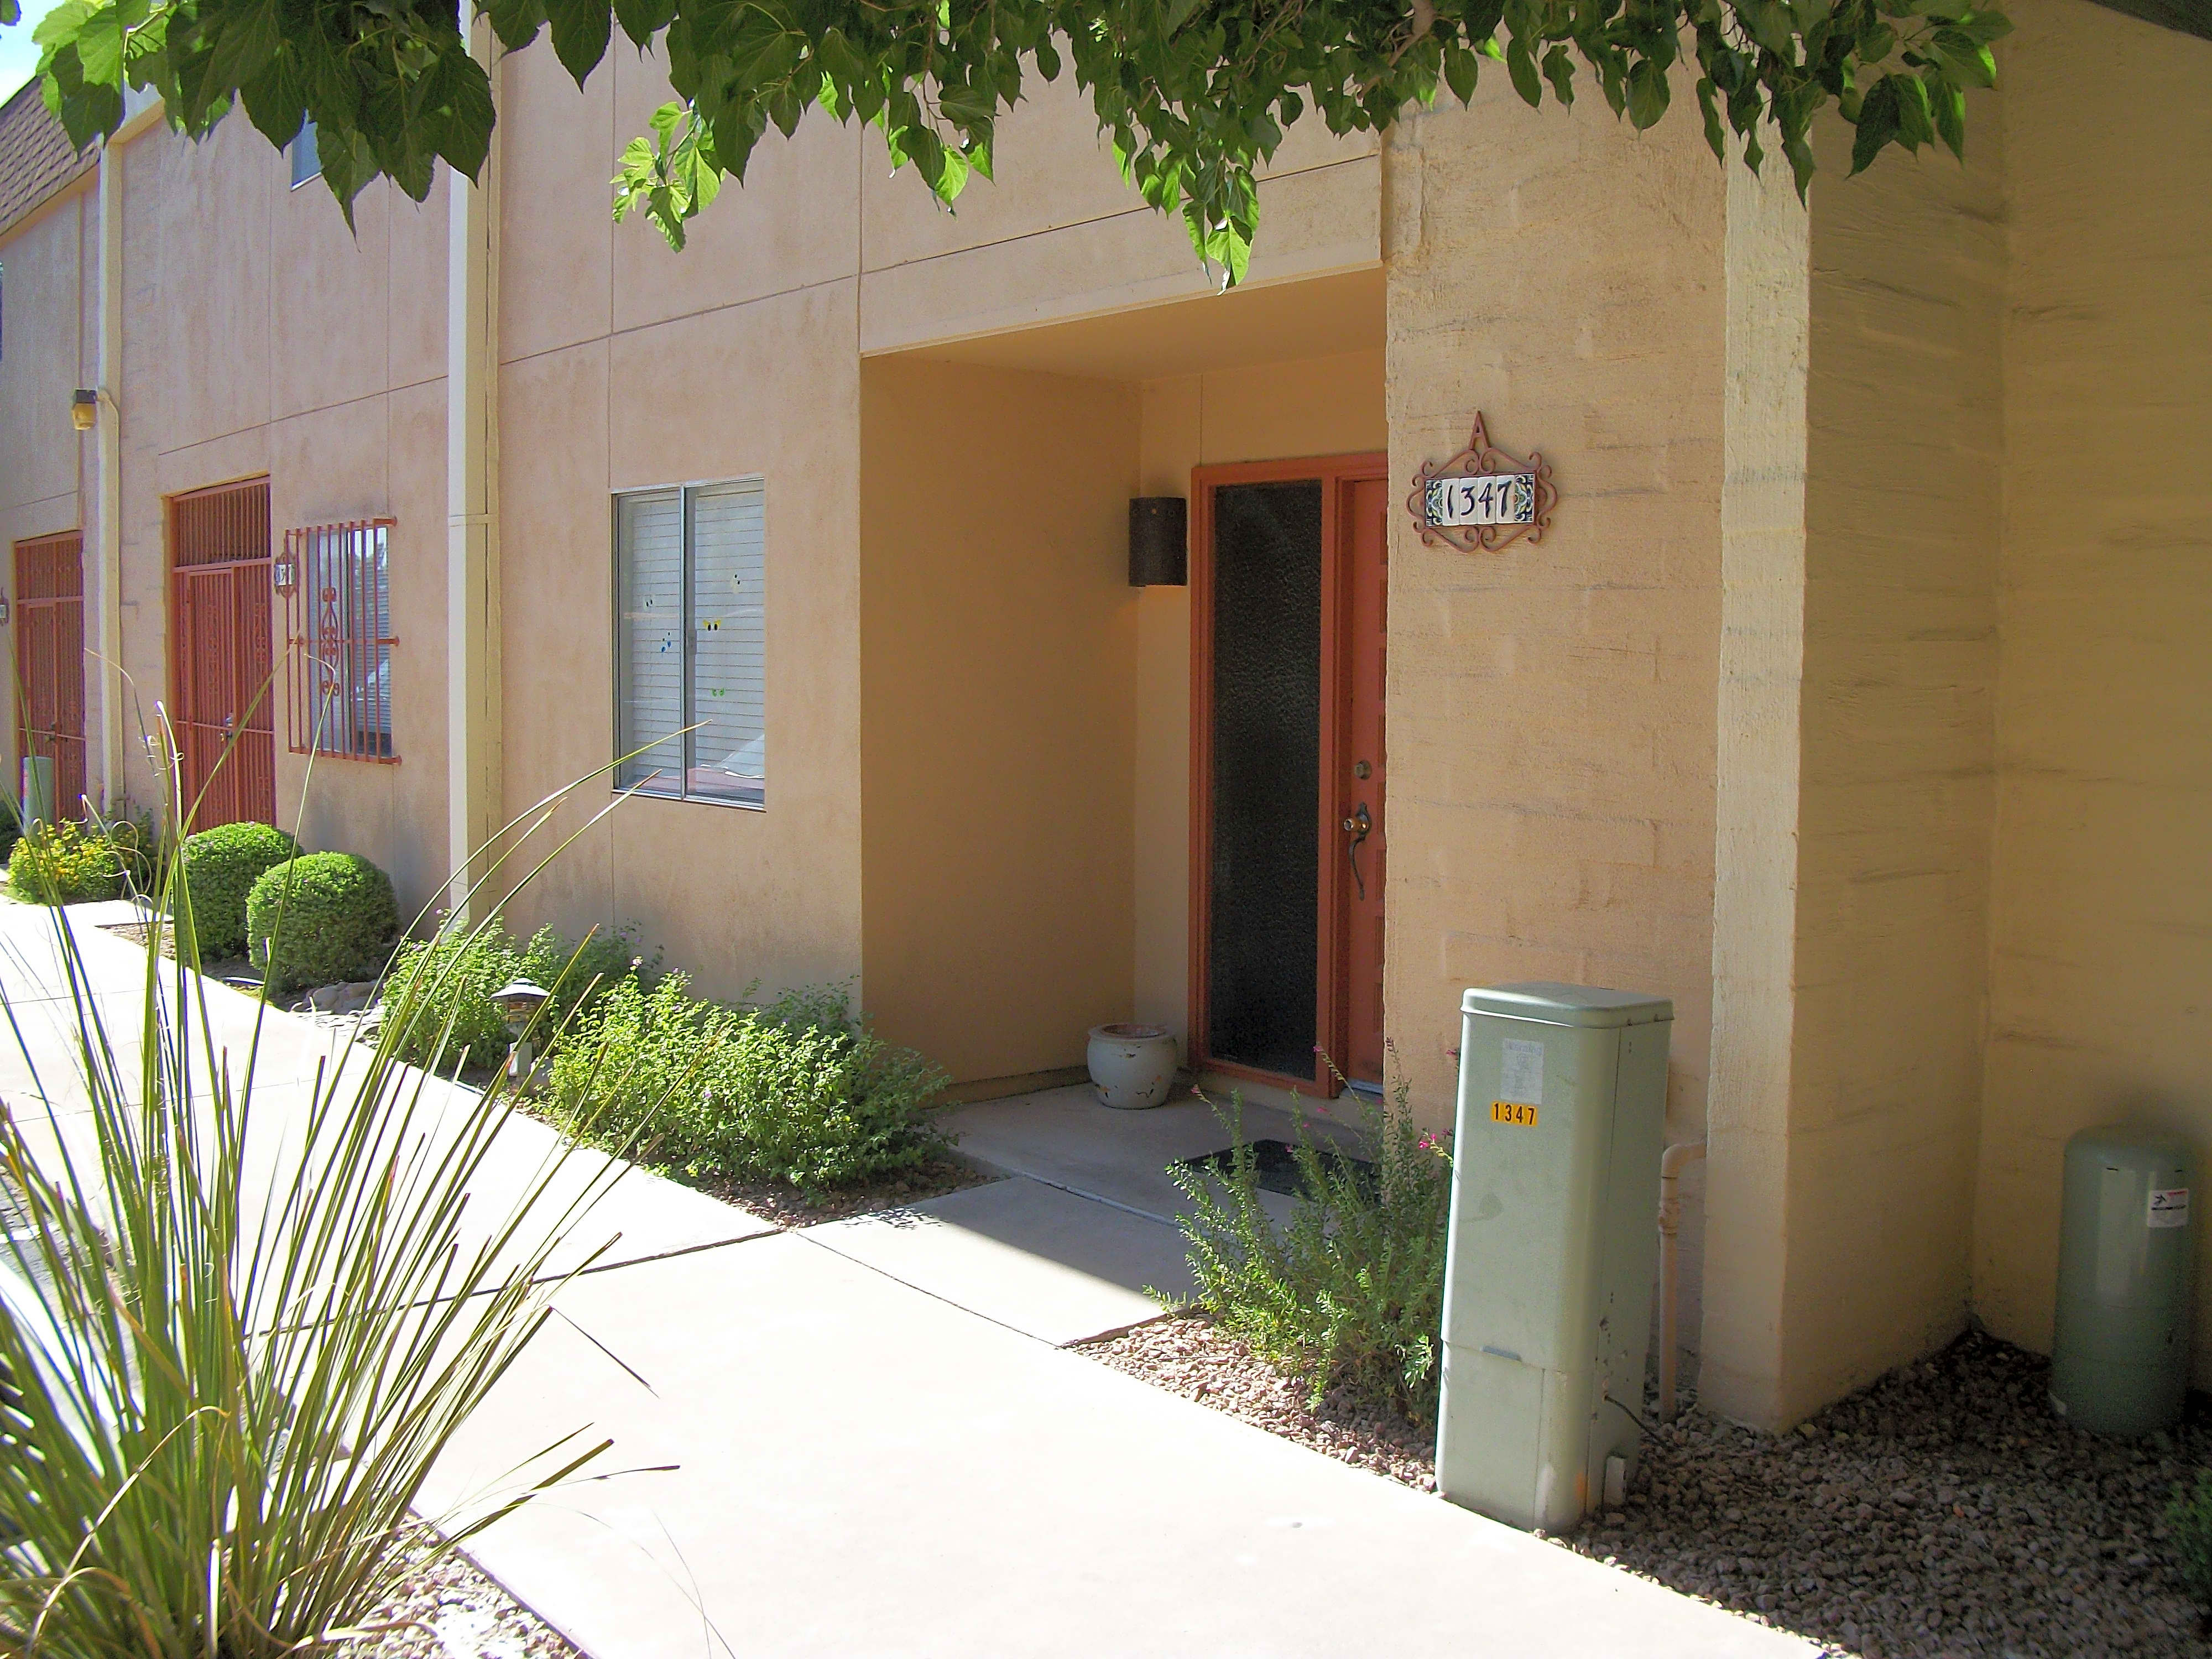 2 Bed/25 Bath Townhouse In Central Tucson